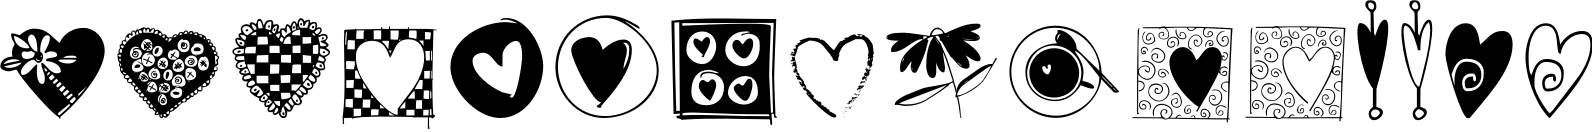 Heart Doodles Too Font